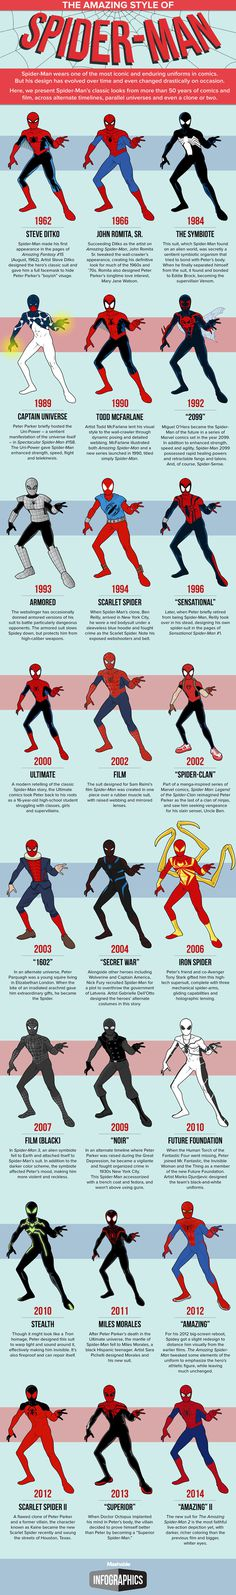 Spidey-Graphic-Web-2 #man #spiderman #spider